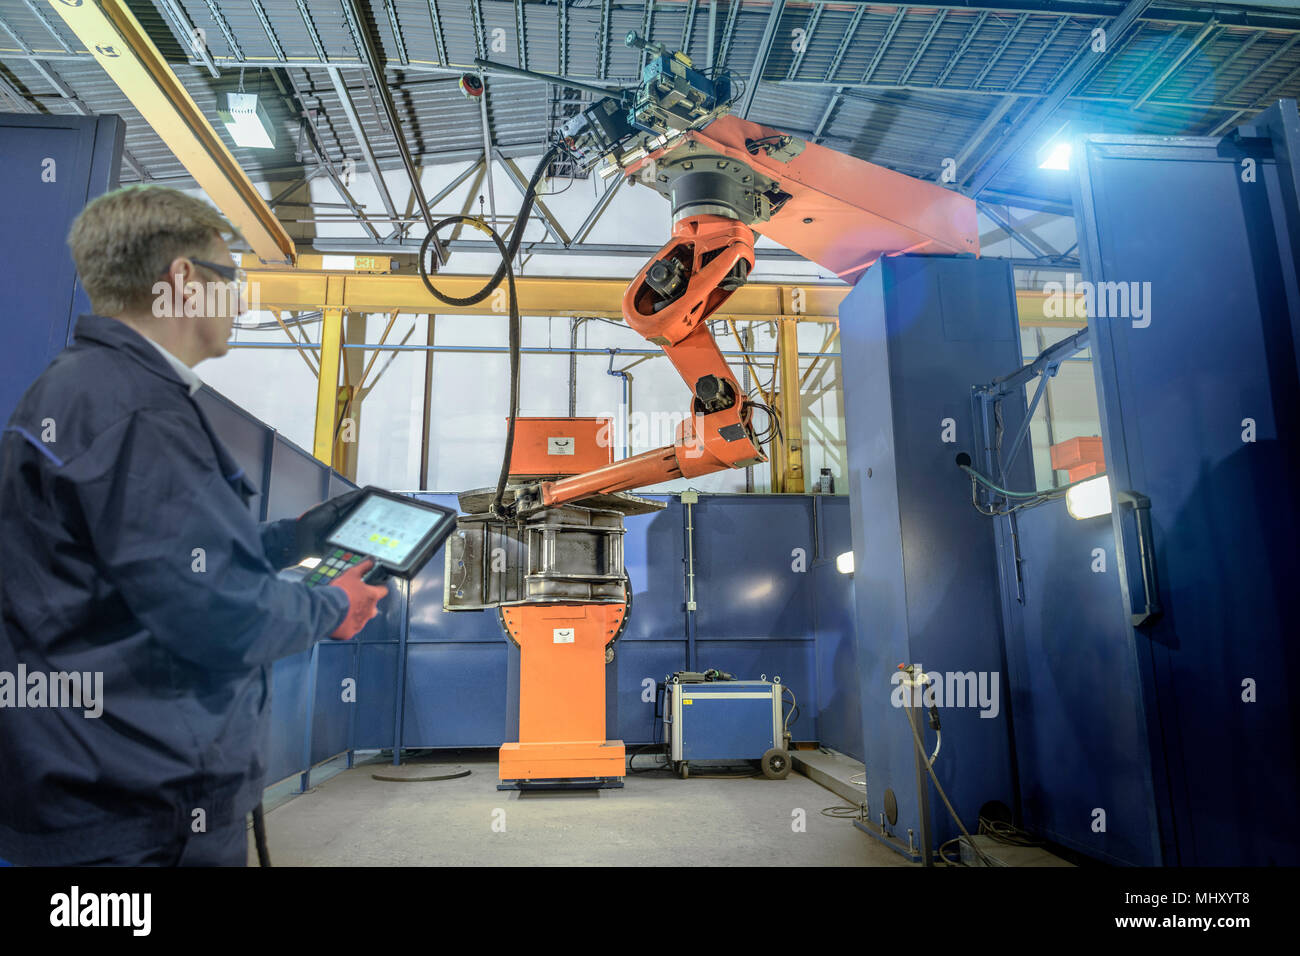 Engineer with controller in robotic welding bay in engineering factory - Stock Image